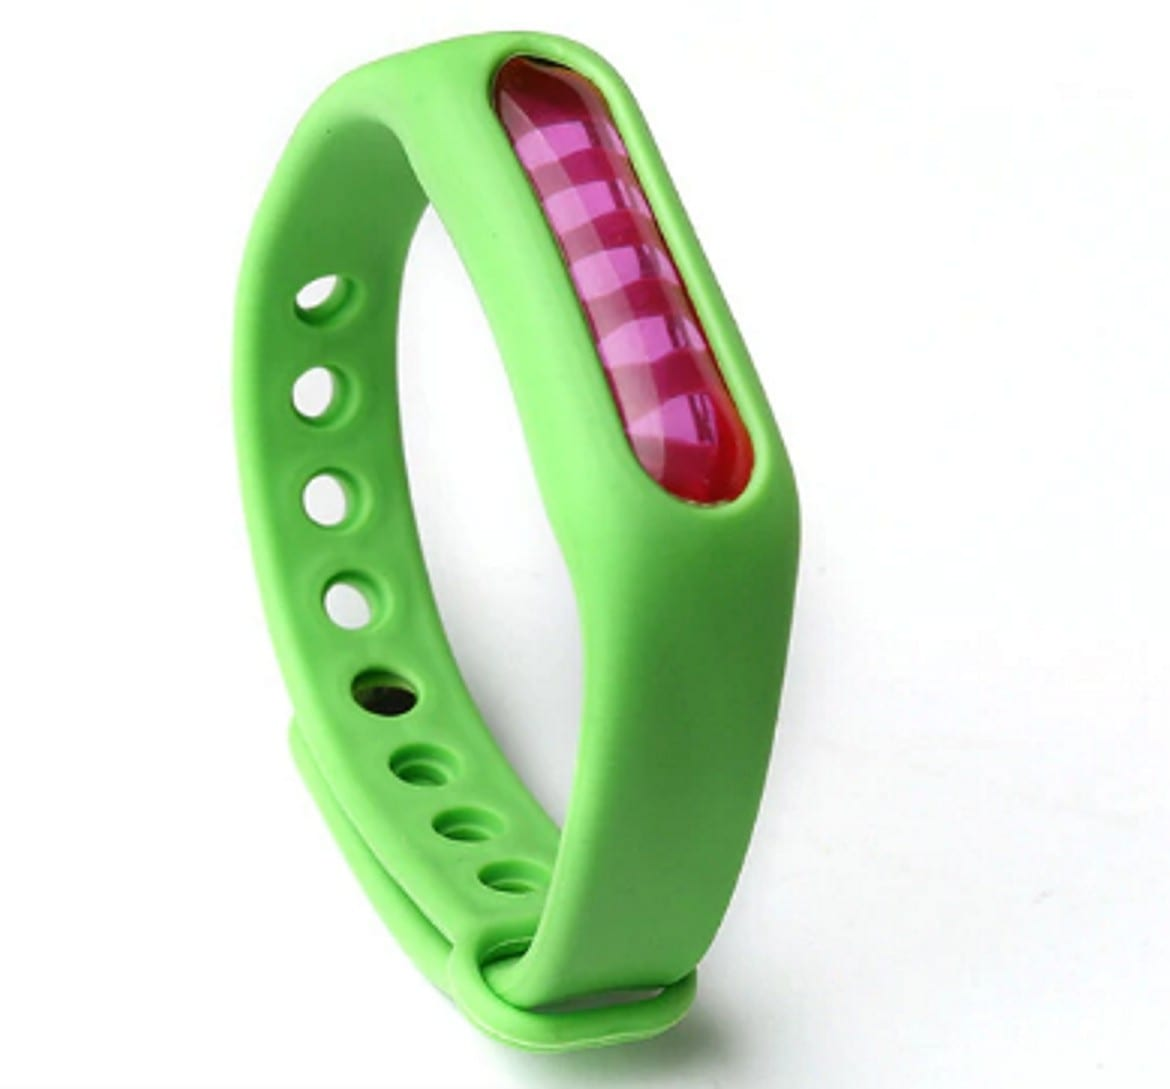 Anti Mosquito Insect Bug Repellent Bracelet Wrist Band